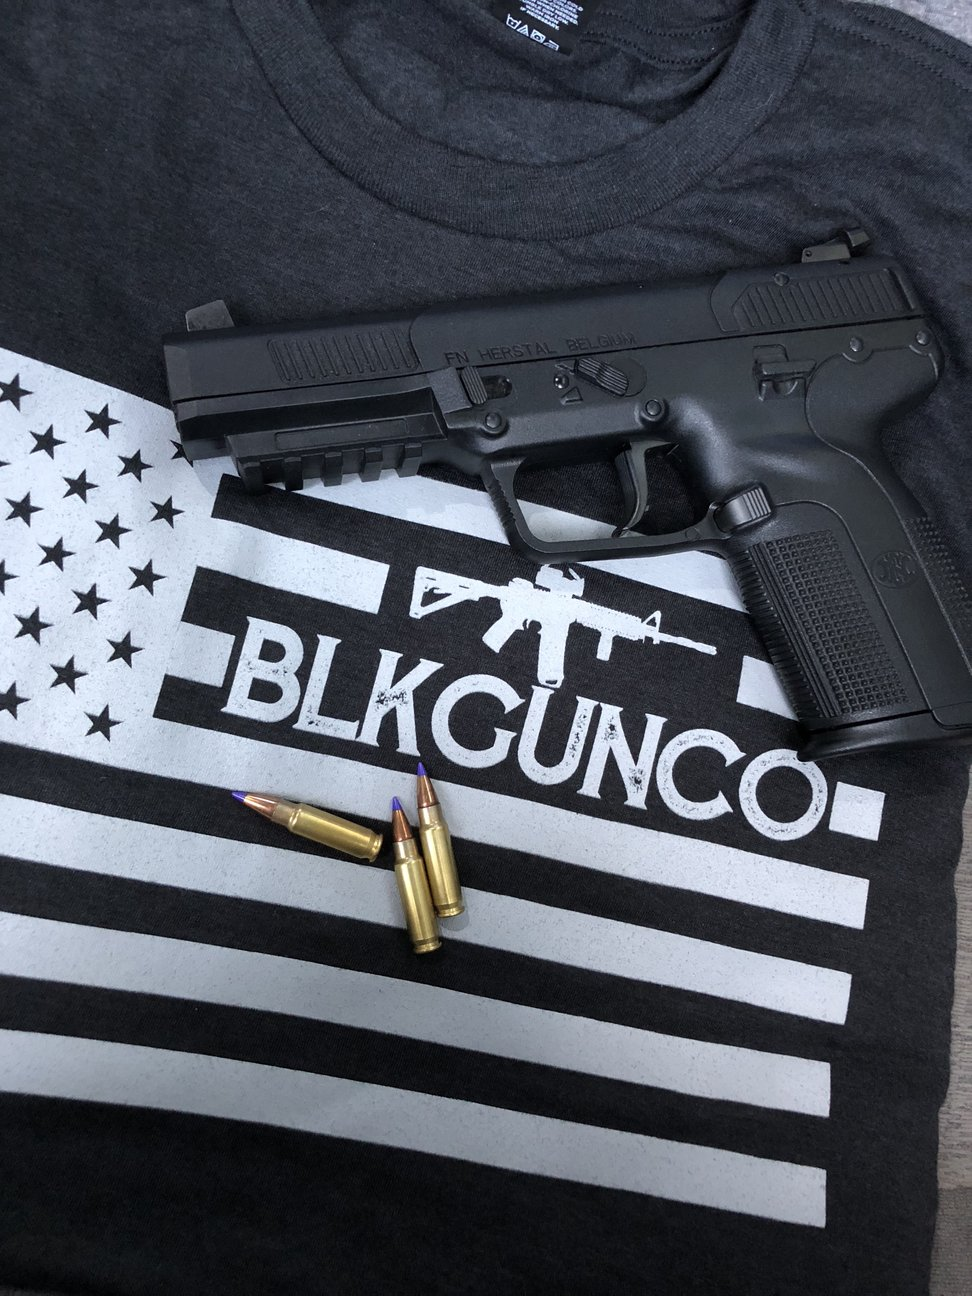 BLKGUNCO - Clothing for the Hot Shot! Support our friends and check out their clothing line and purchase a killer shirt for everyday or the shooting range! - www.BLKGUNCO.com